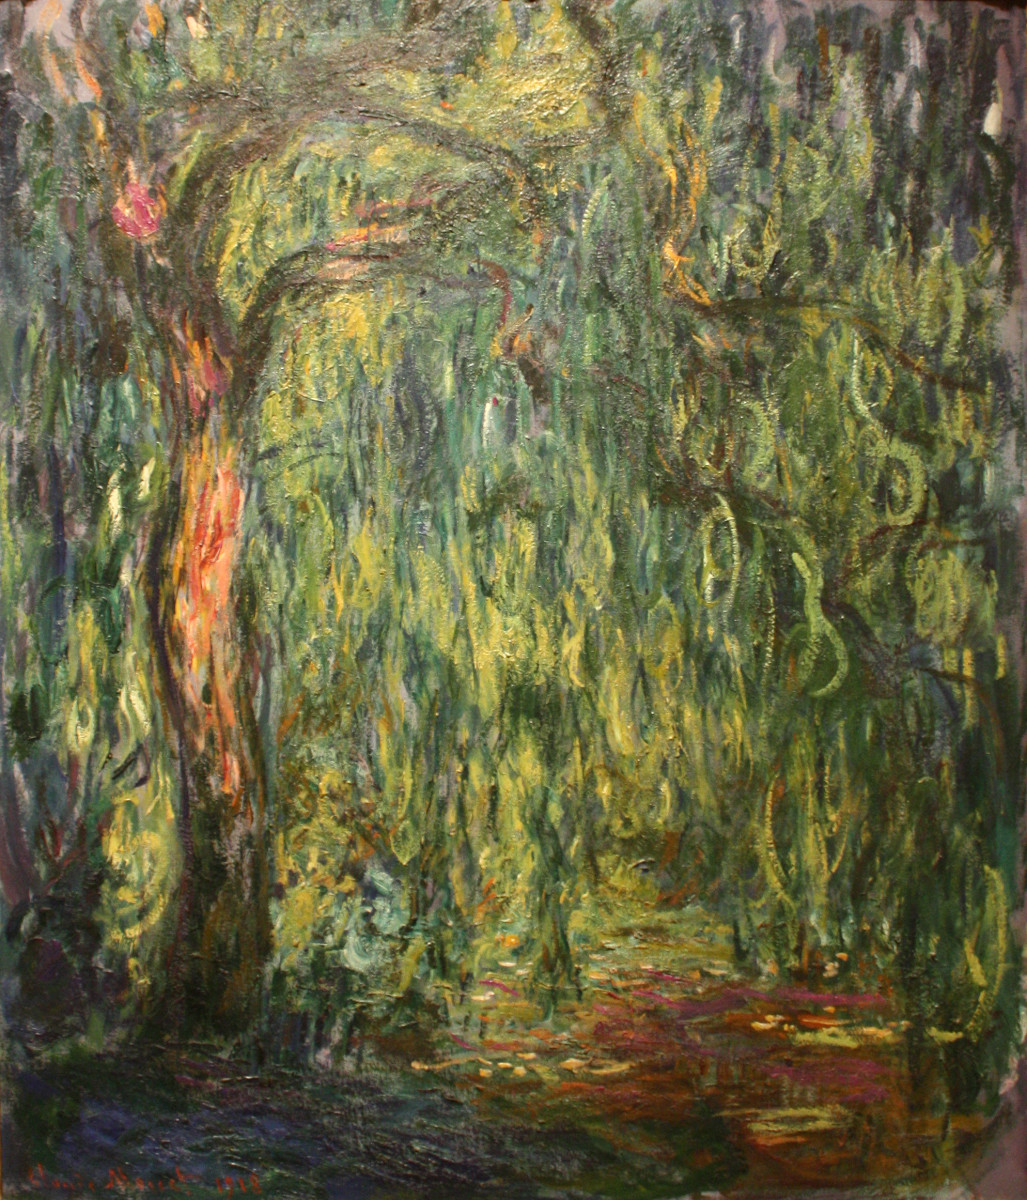 A  willow tree at the edge of Monet's water lilly pond. Completed in 1918. The medium used is oil on canvas.